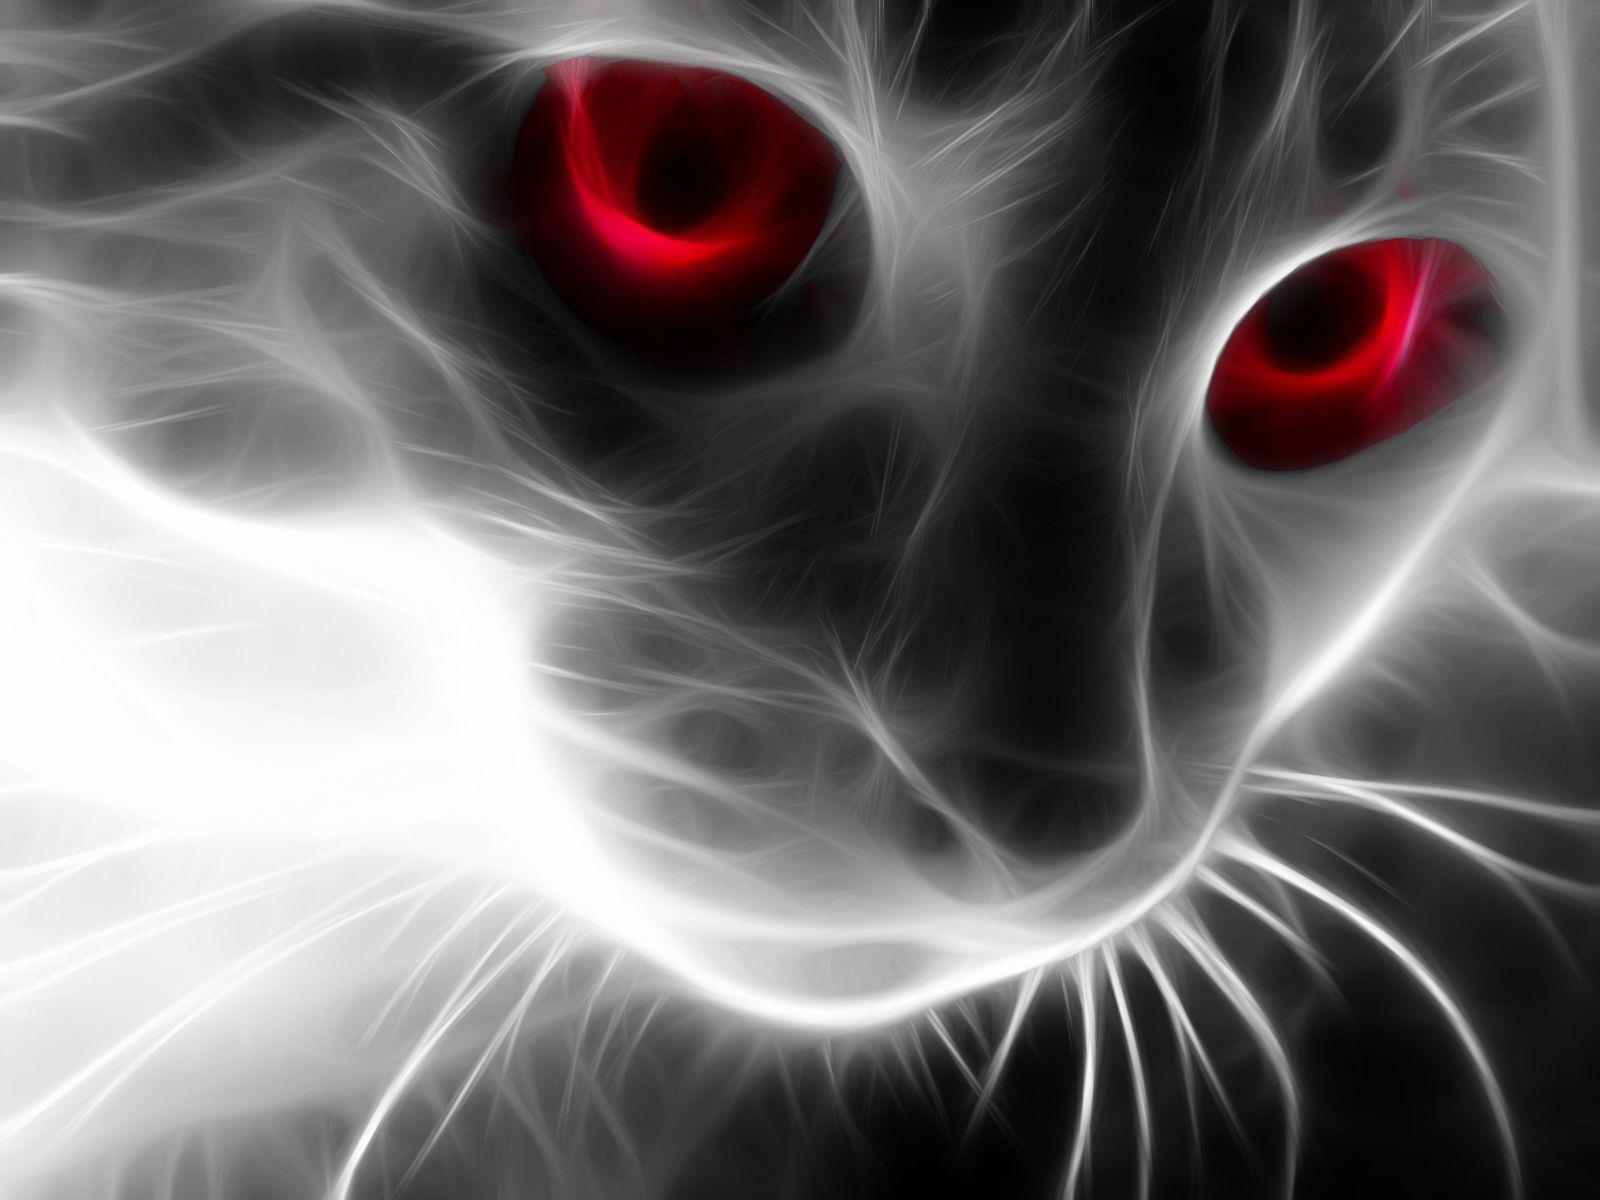 chat-yeux-rouges-fonds-d-ecran-effets-lumiere-et-retouche-photo_01